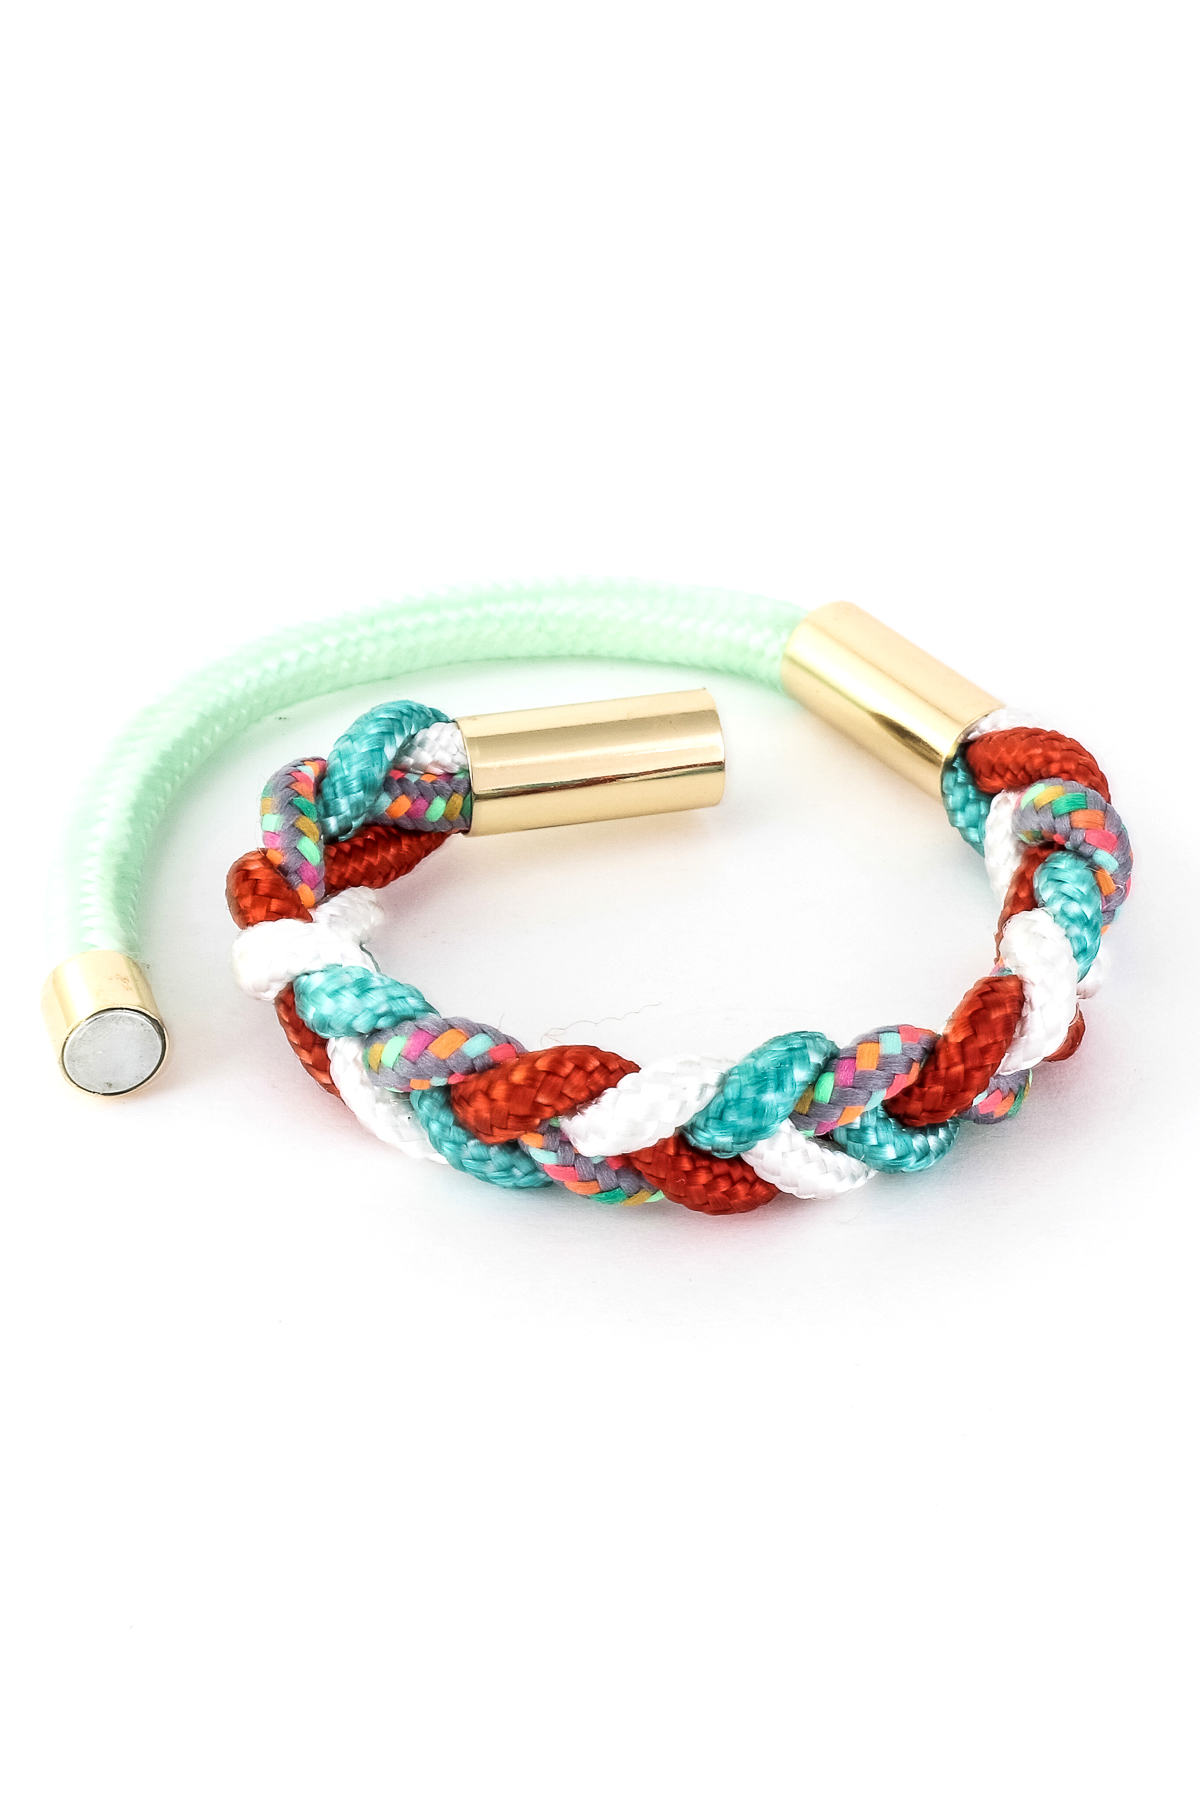 braided string bracelets - photo #13